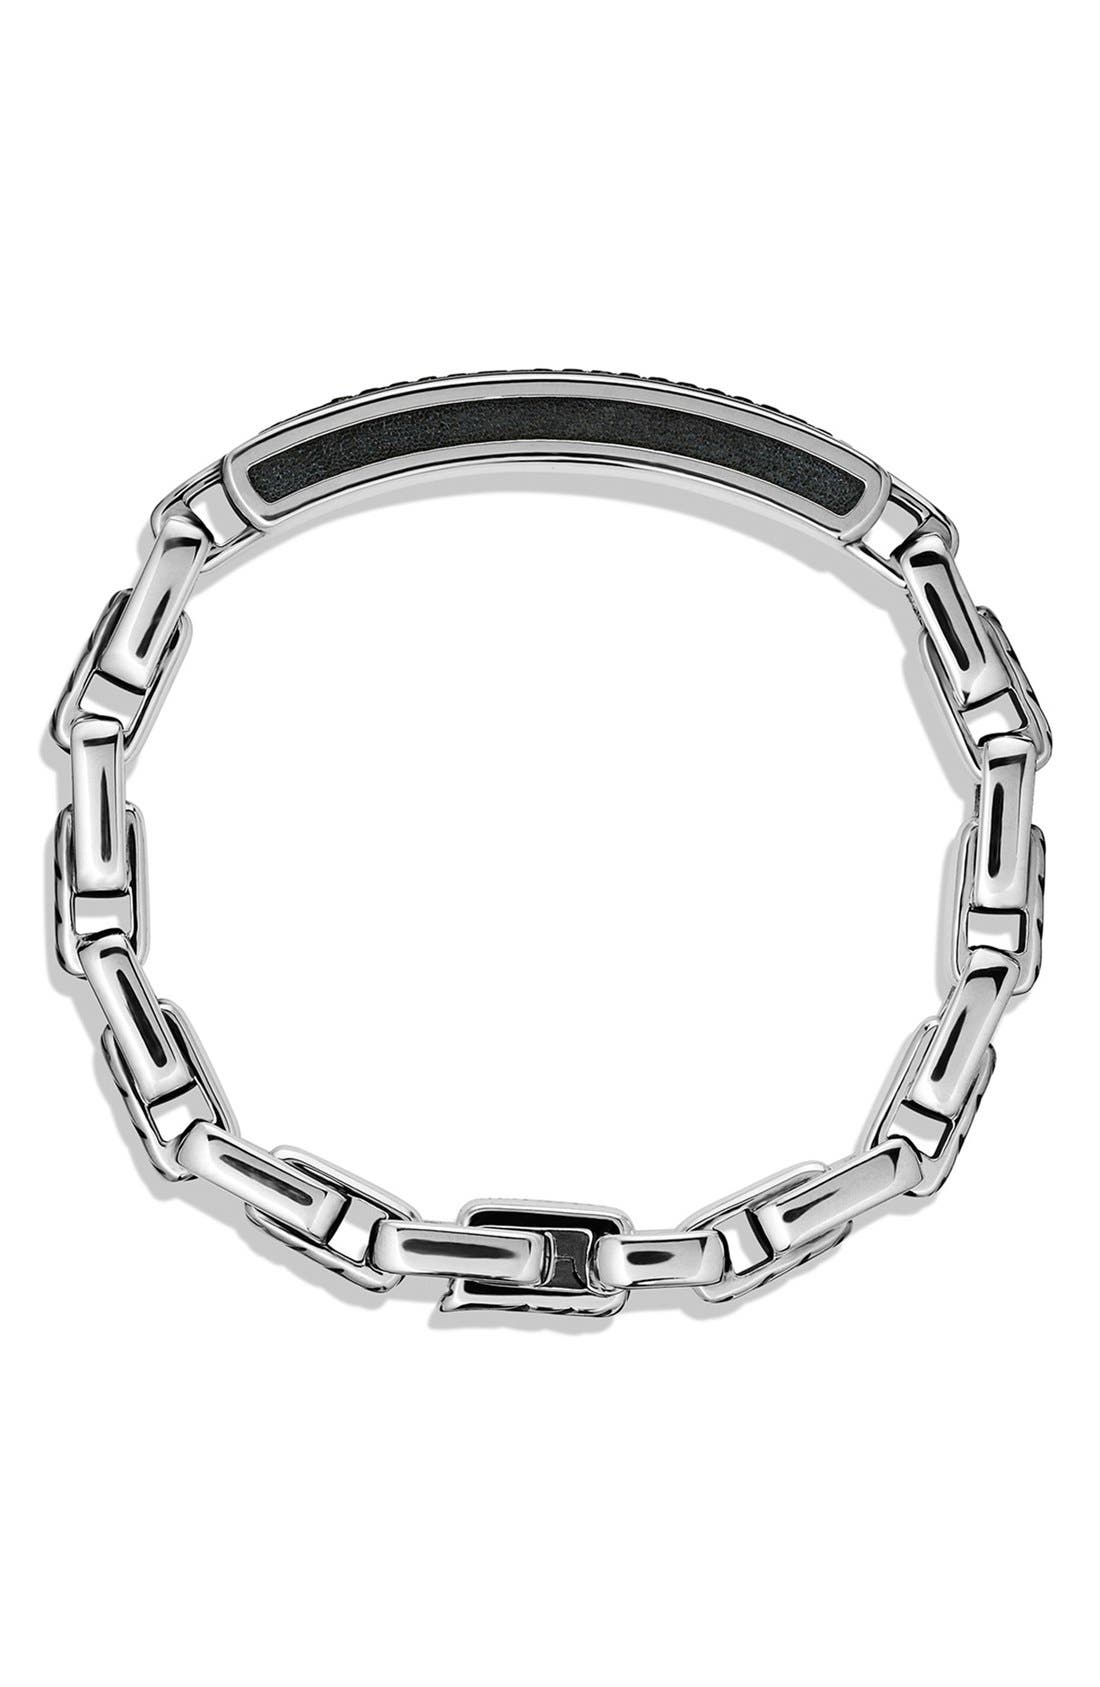 Alternate Image 2  - David Yurman 'Modern Cable' ID Bracelet with Black Diamonds